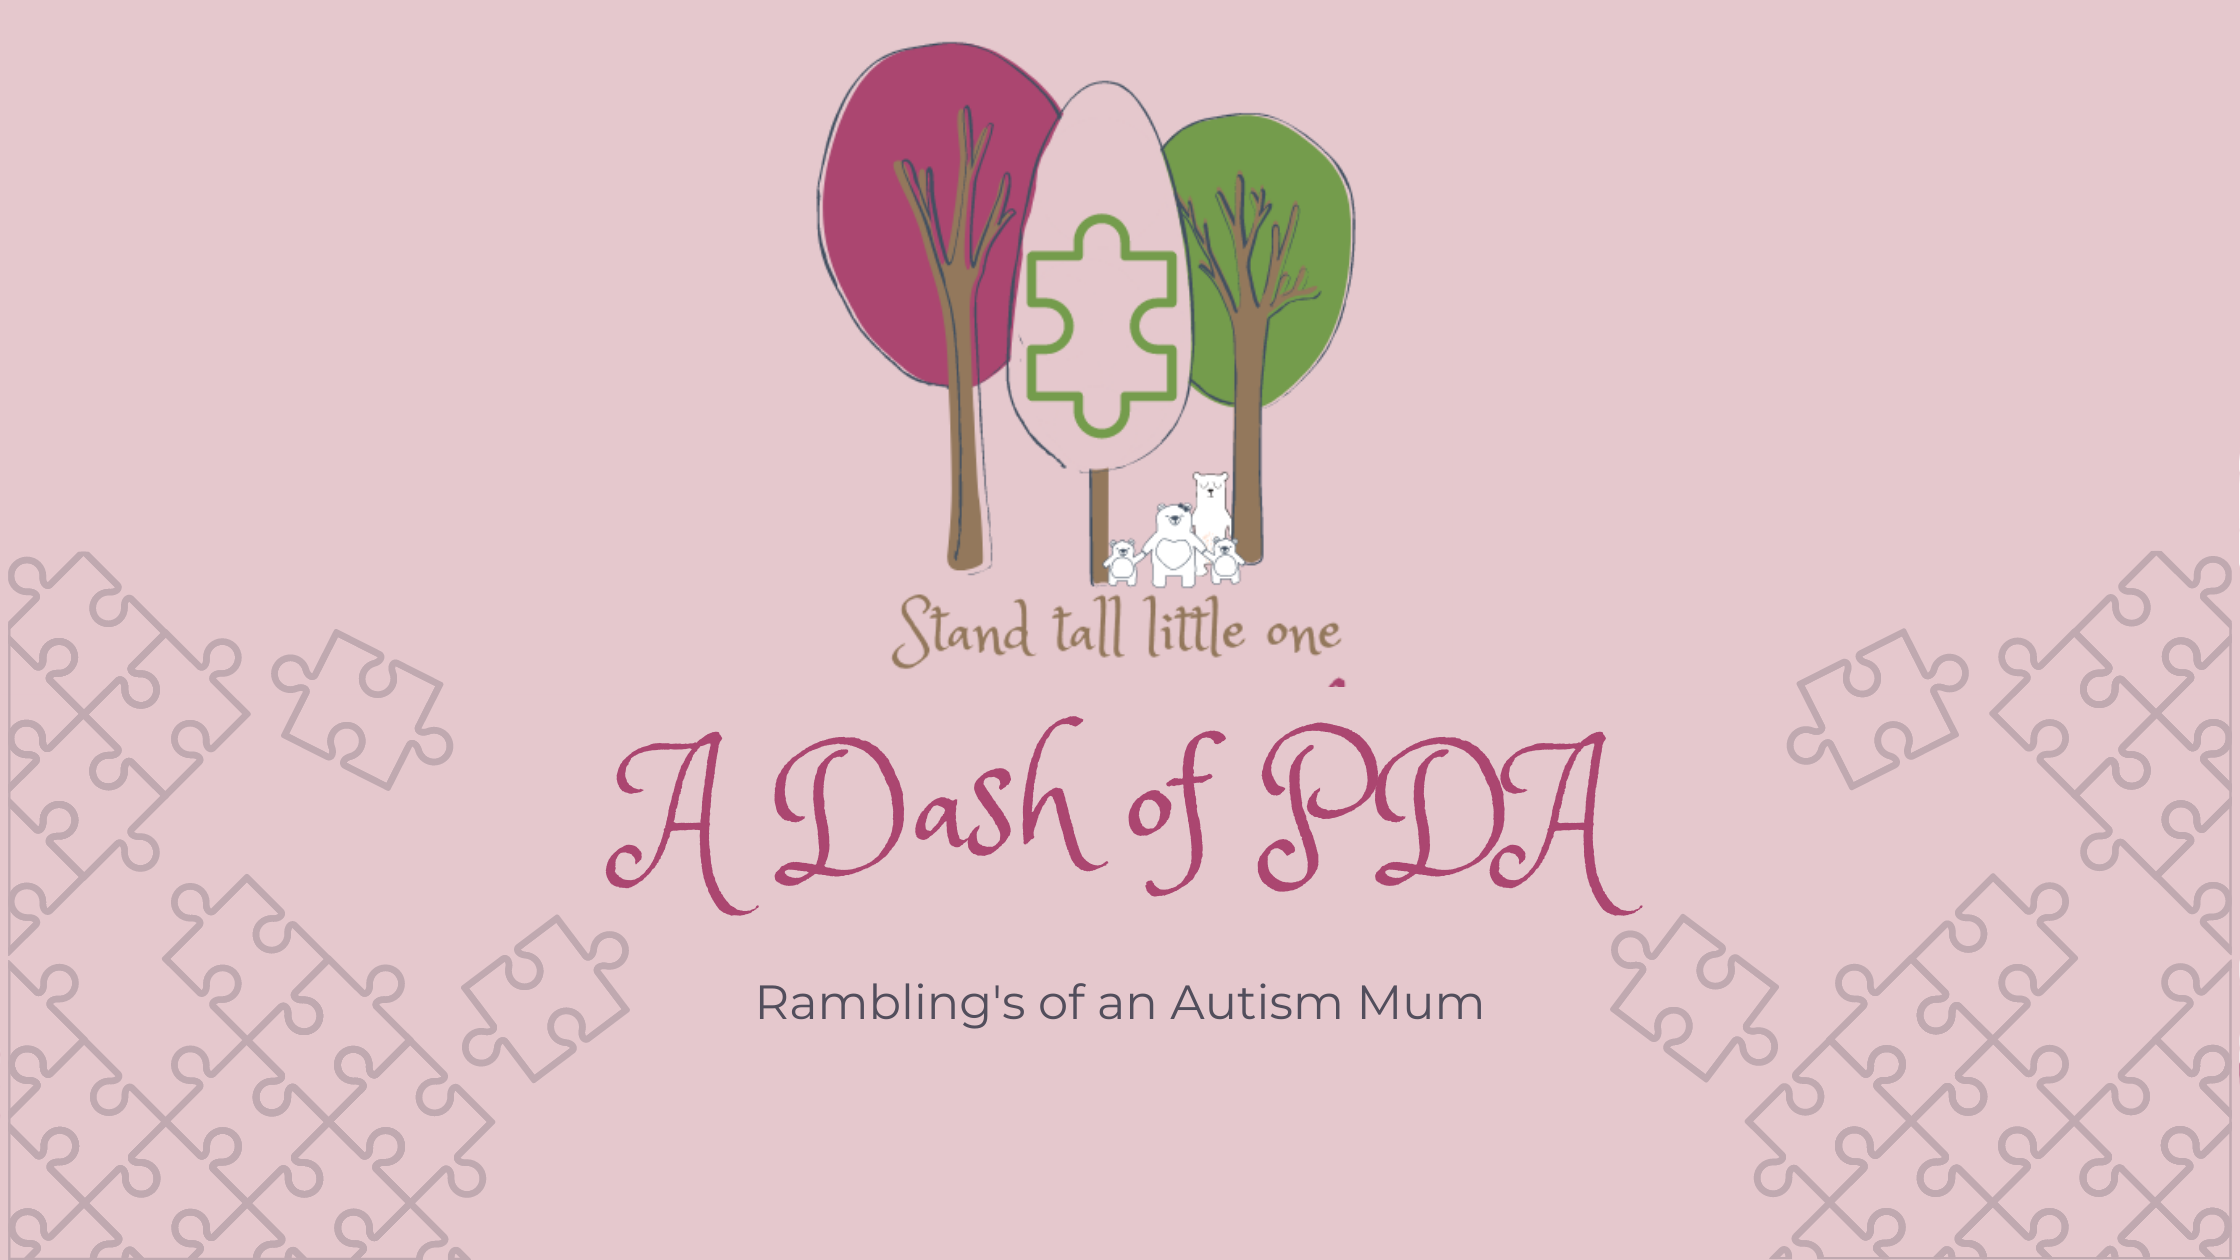 Ramblings of an Autism Mum